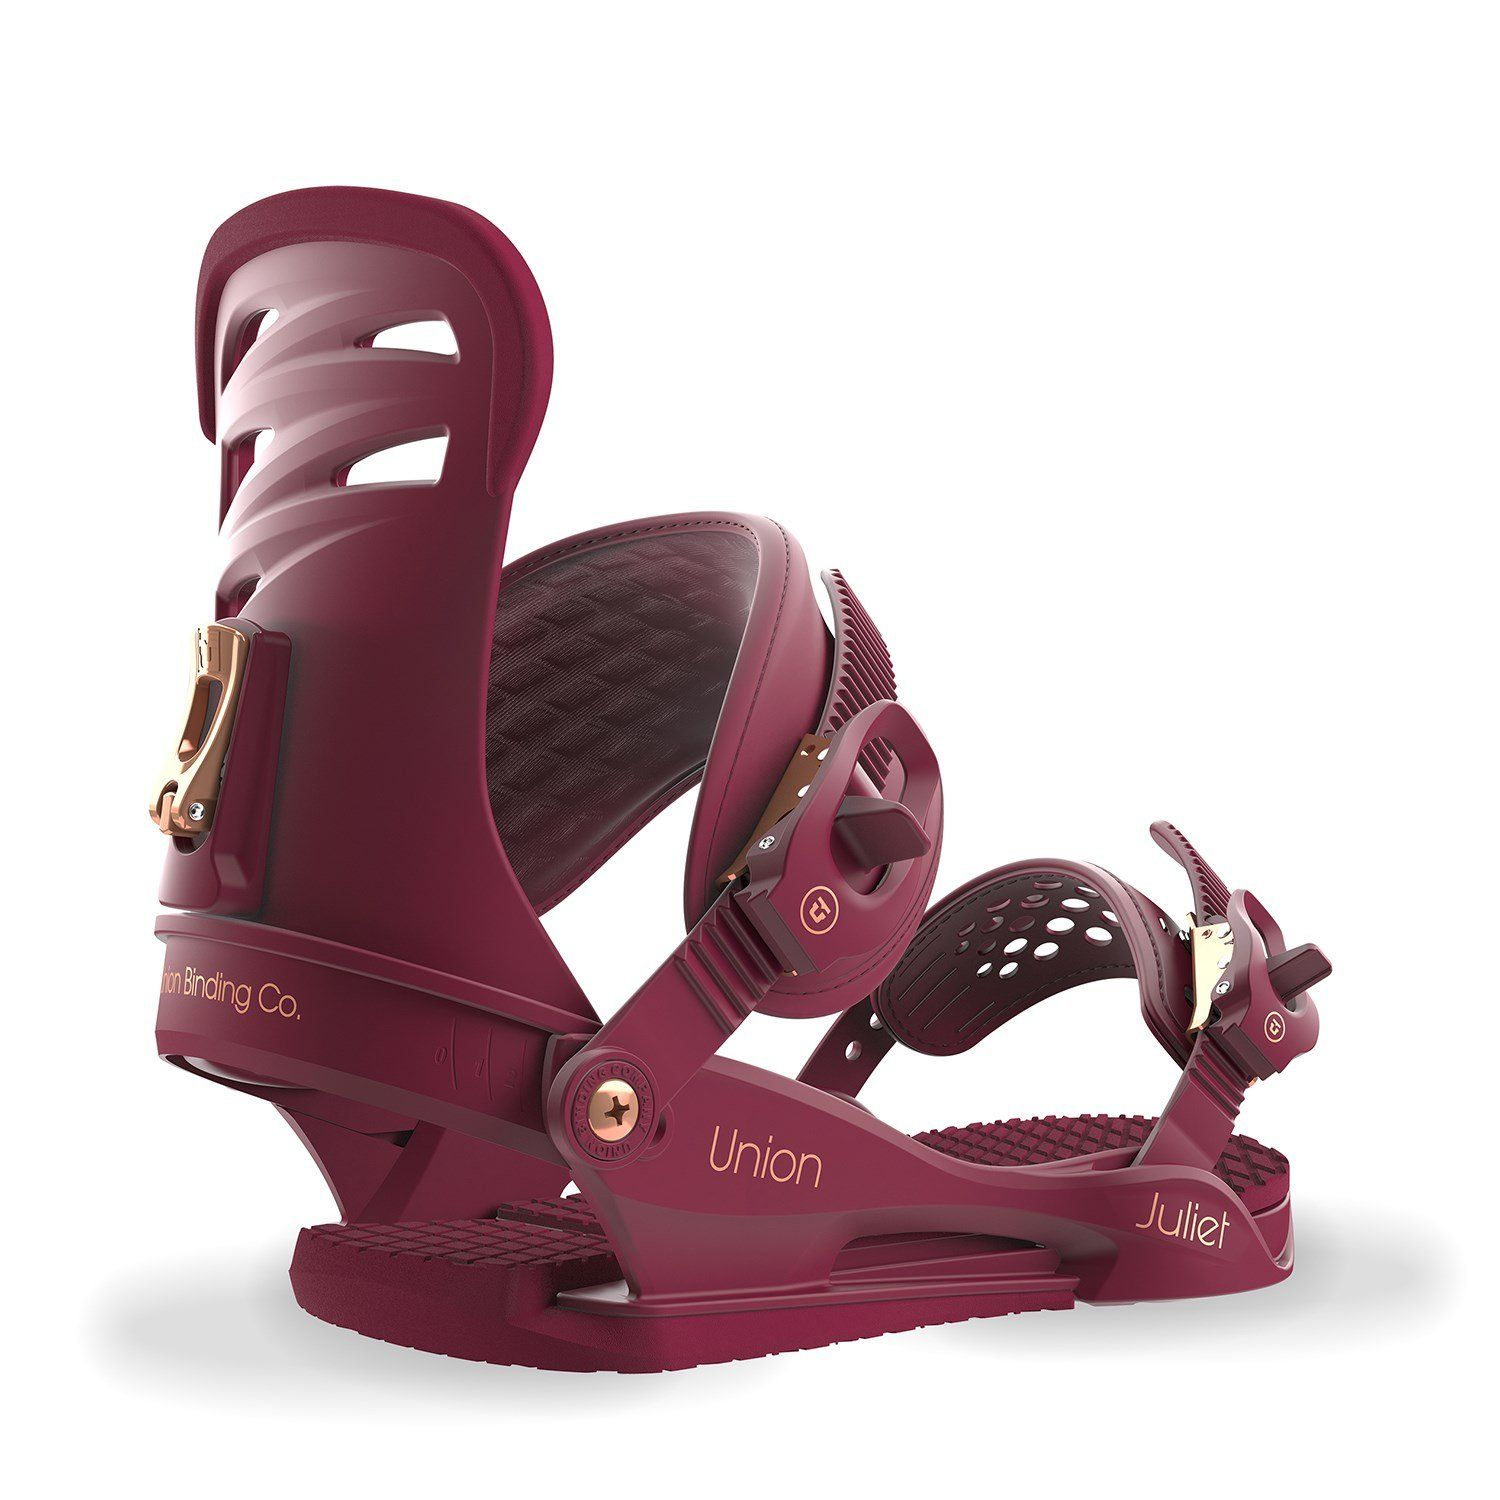 Union Womens Snowboard Bindings Juliet